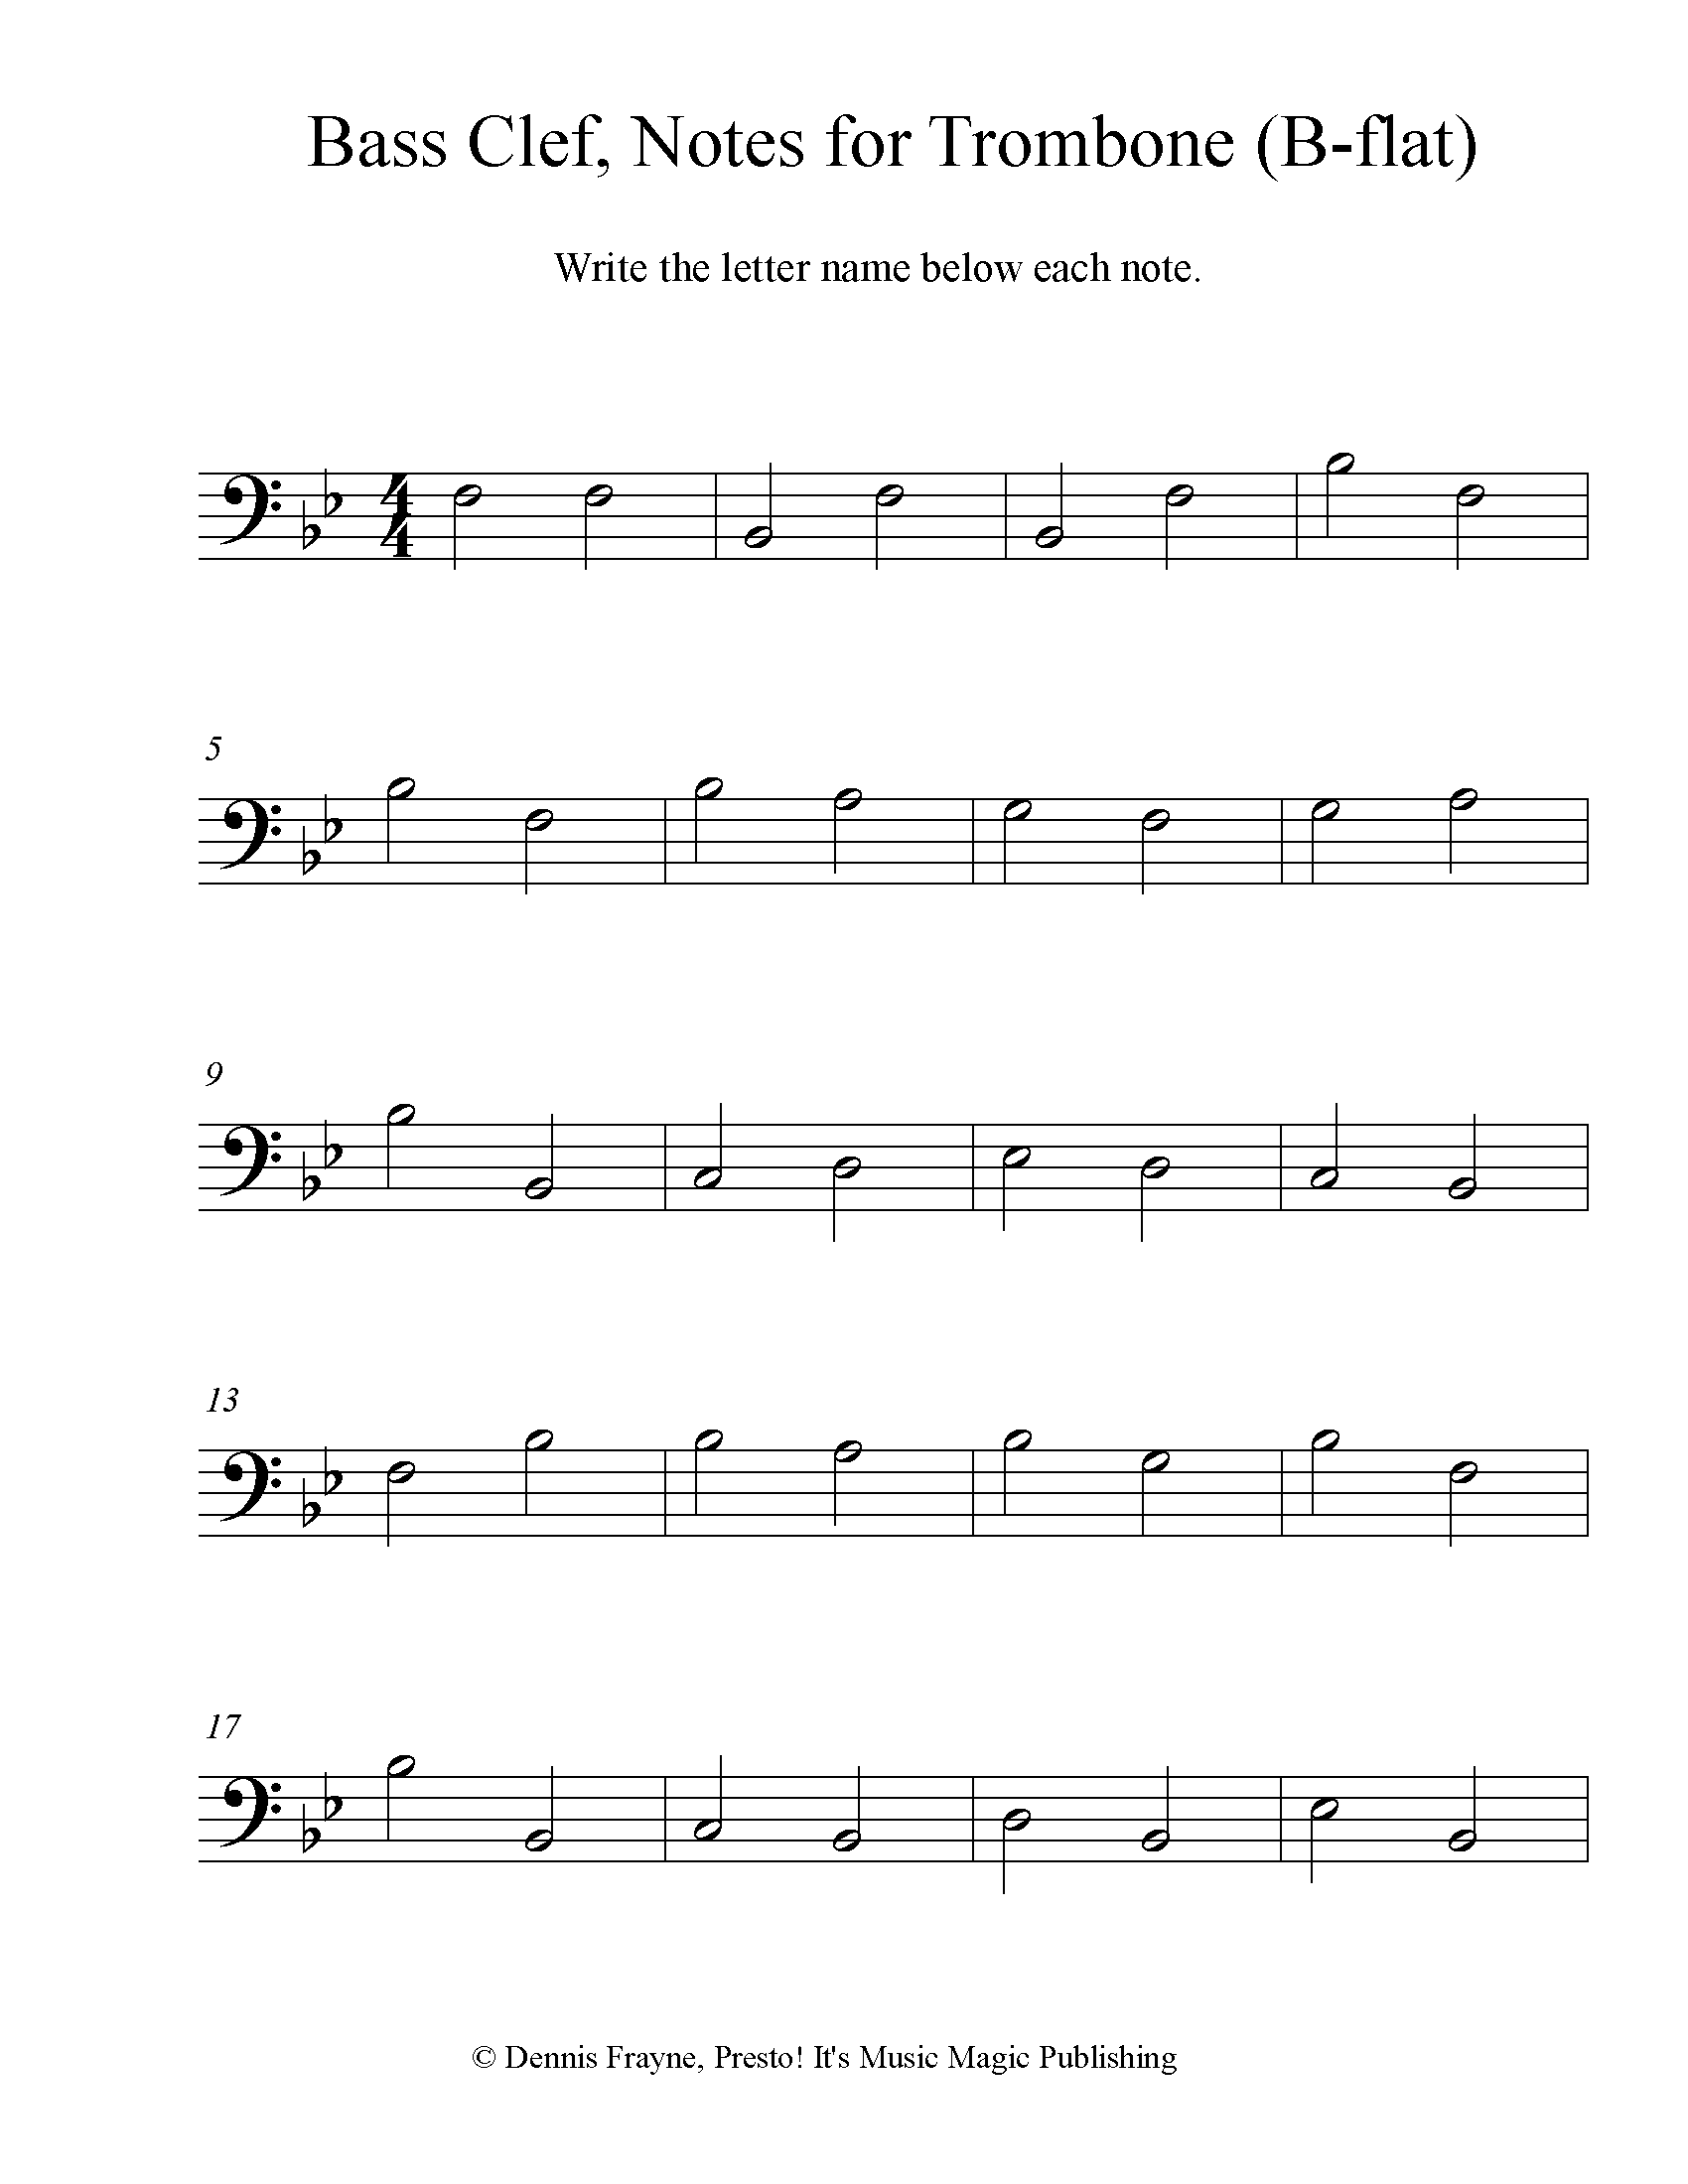 Bass Clef Note Identification for Trombone/Baritone (B-flat) 4 pages